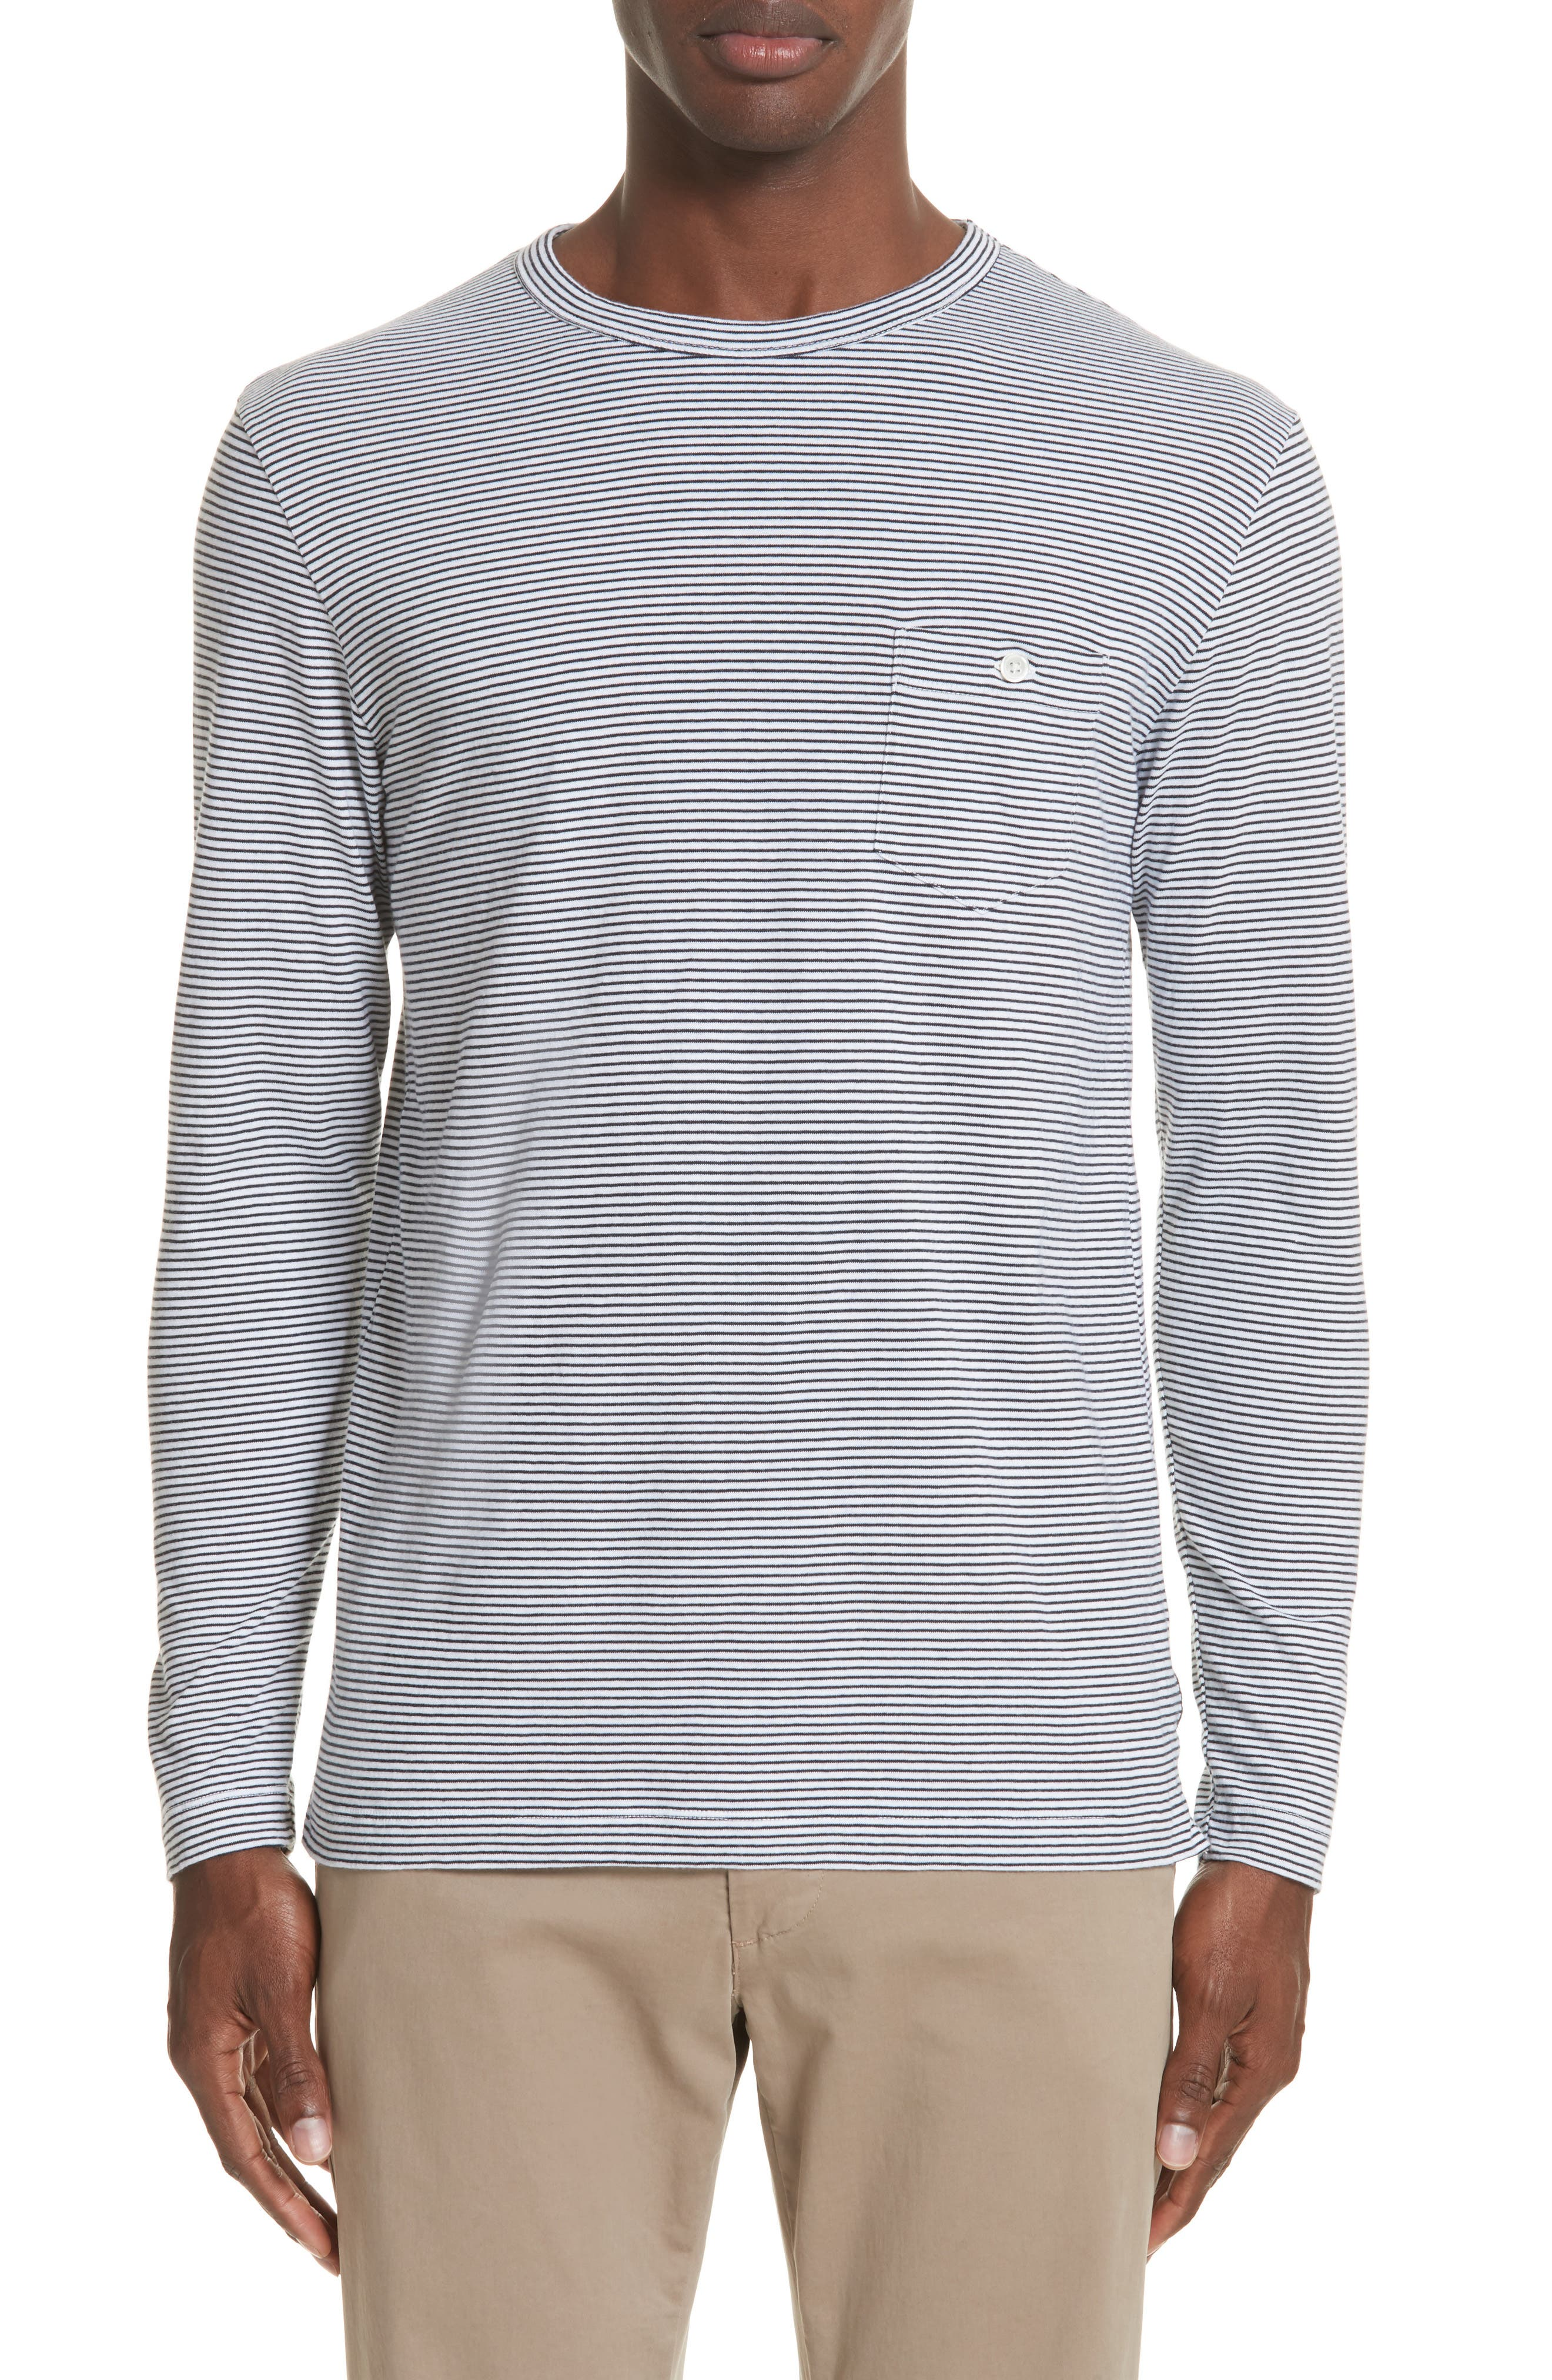 Todd Snyder Stripe Long Sleeve T-Shirt